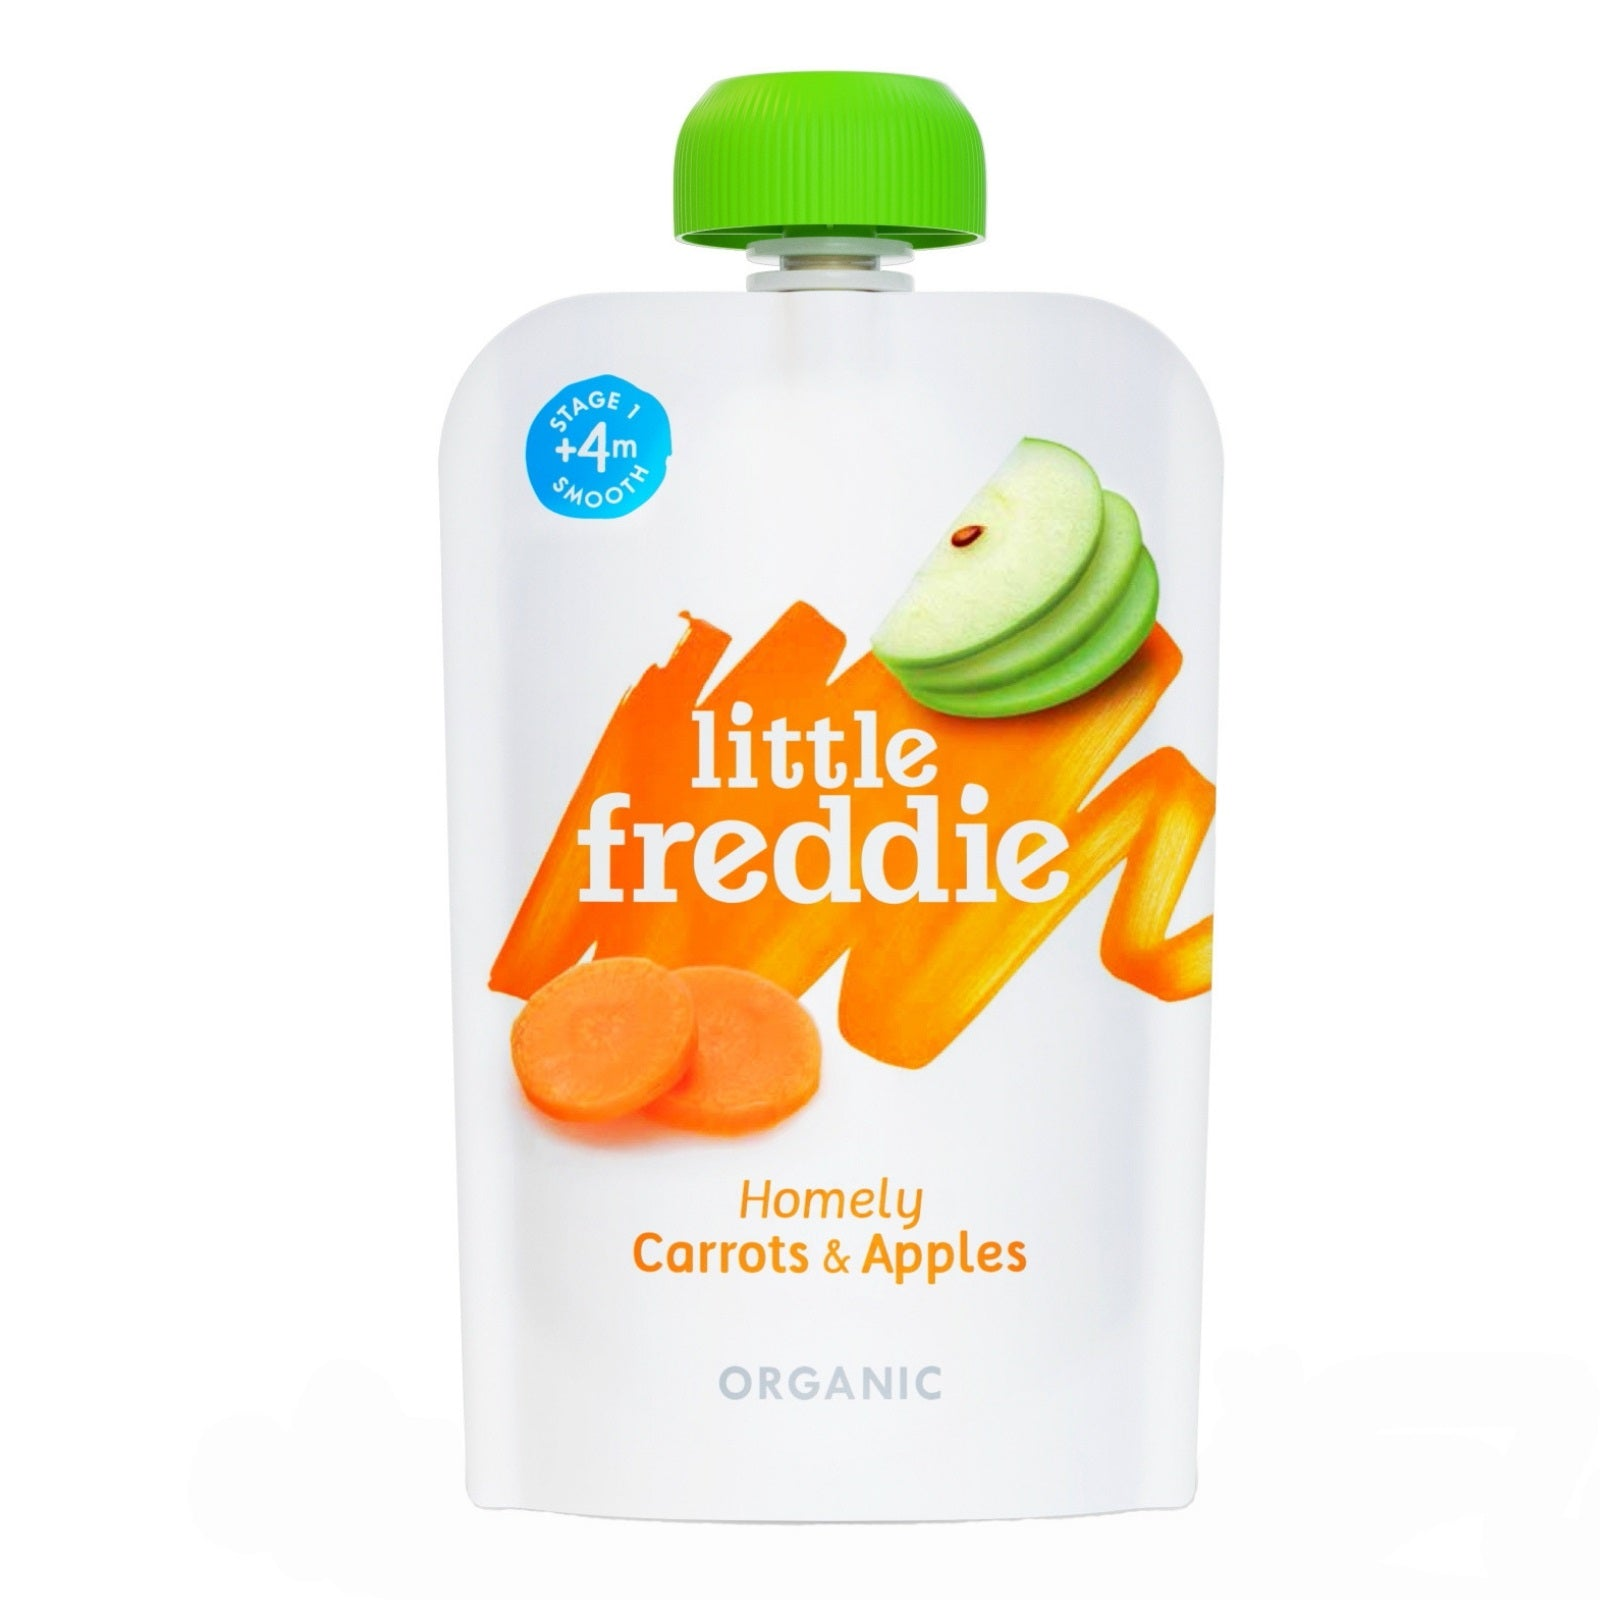 Little Freddie Homely Carrots and Apples 100g [BBF 15 May 2021]